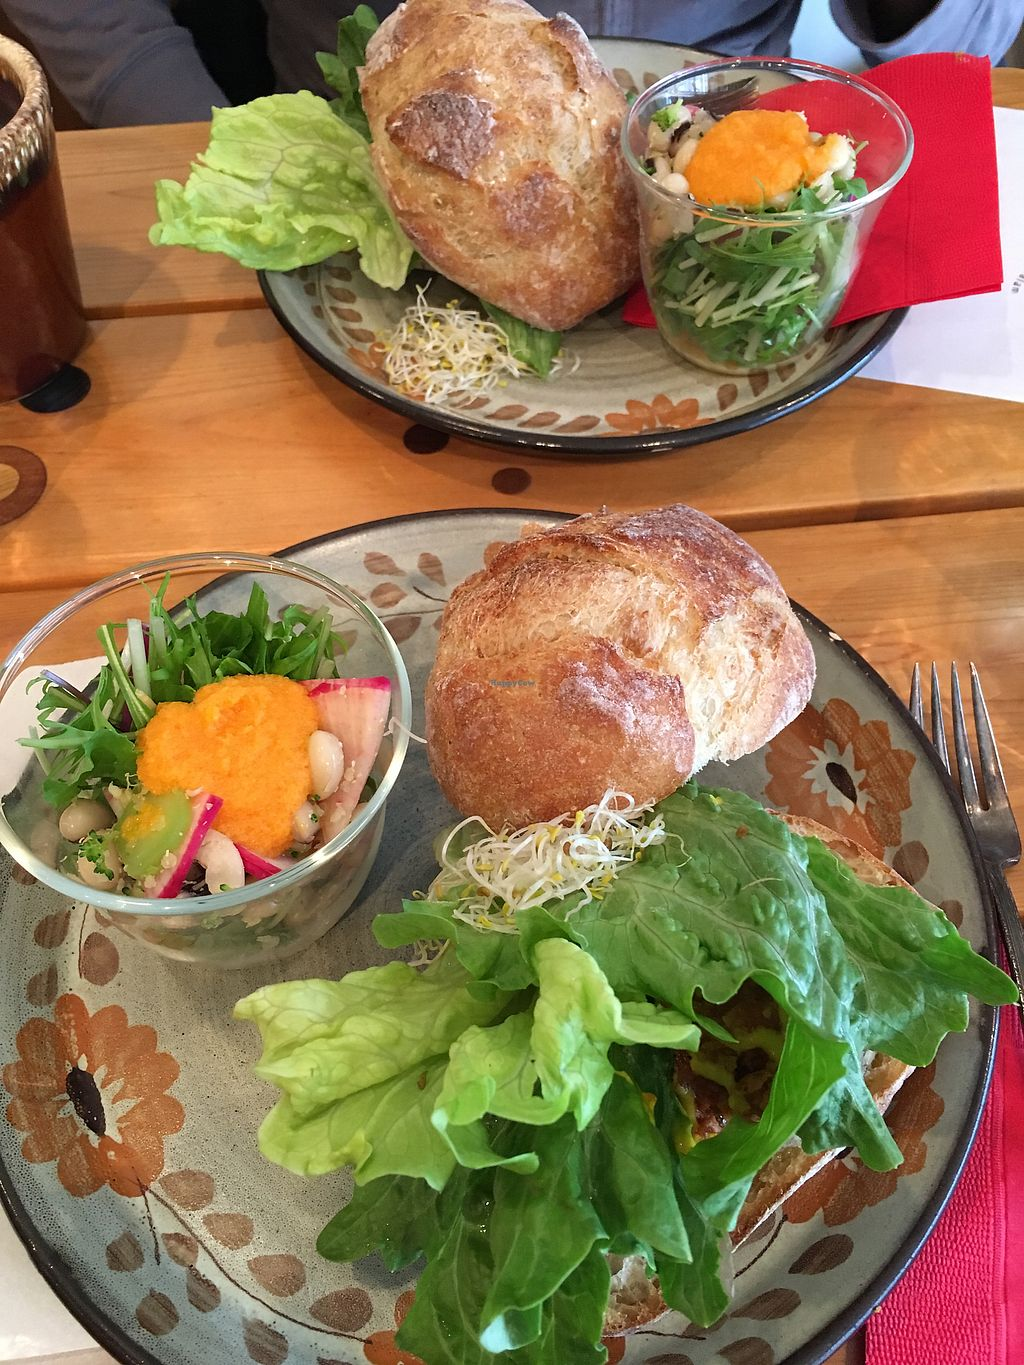 """Photo of Phalam Cafe  by <a href=""""/members/profile/ZoeMackenzie"""">ZoeMackenzie</a> <br/>Delicious lentil burgers <br/> December 16, 2017  - <a href='/contact/abuse/image/55894/336075'>Report</a>"""